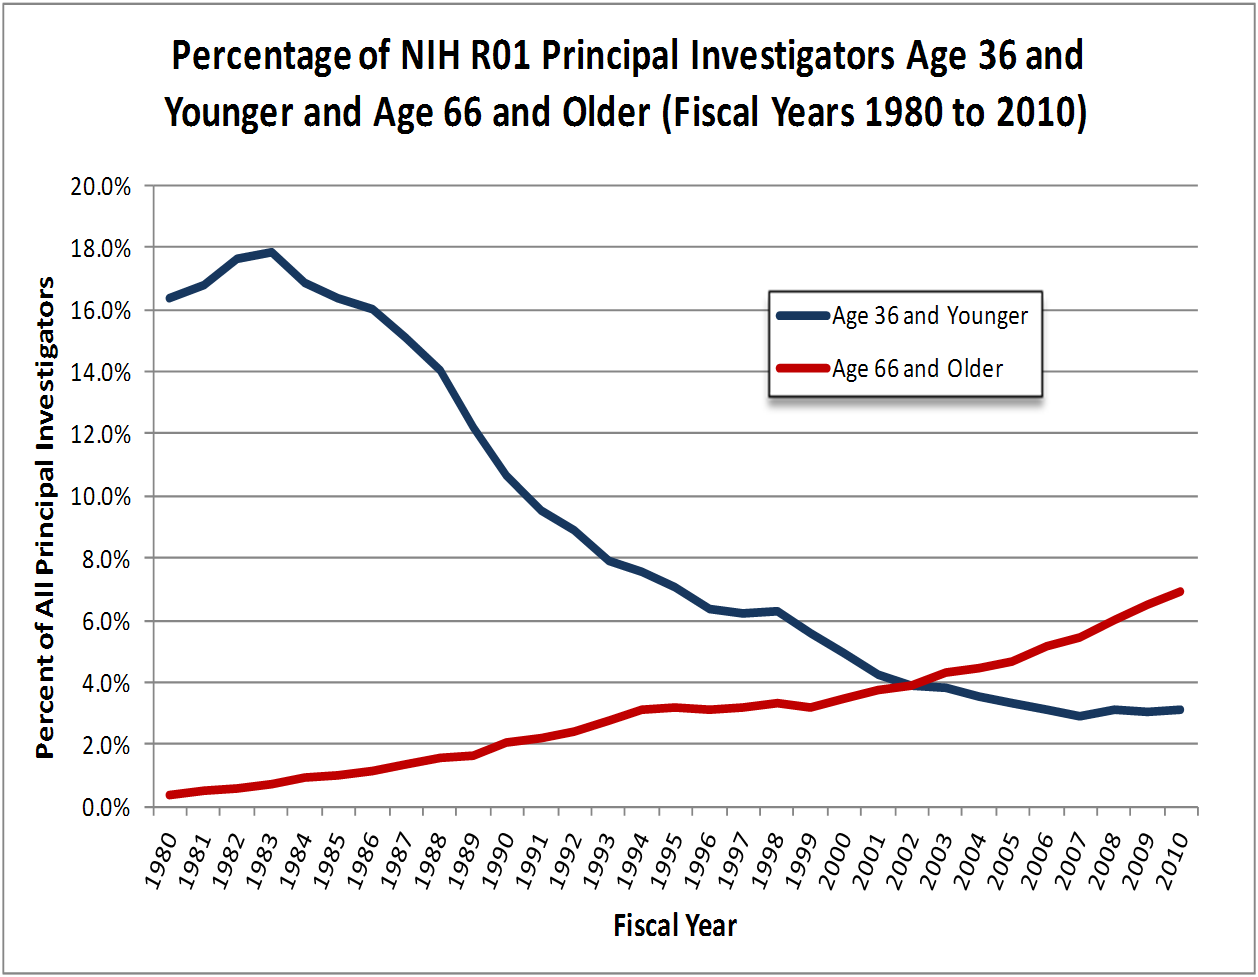 Percentage of R01 investigators age 36 and younger and 66 and older 1980-2010.